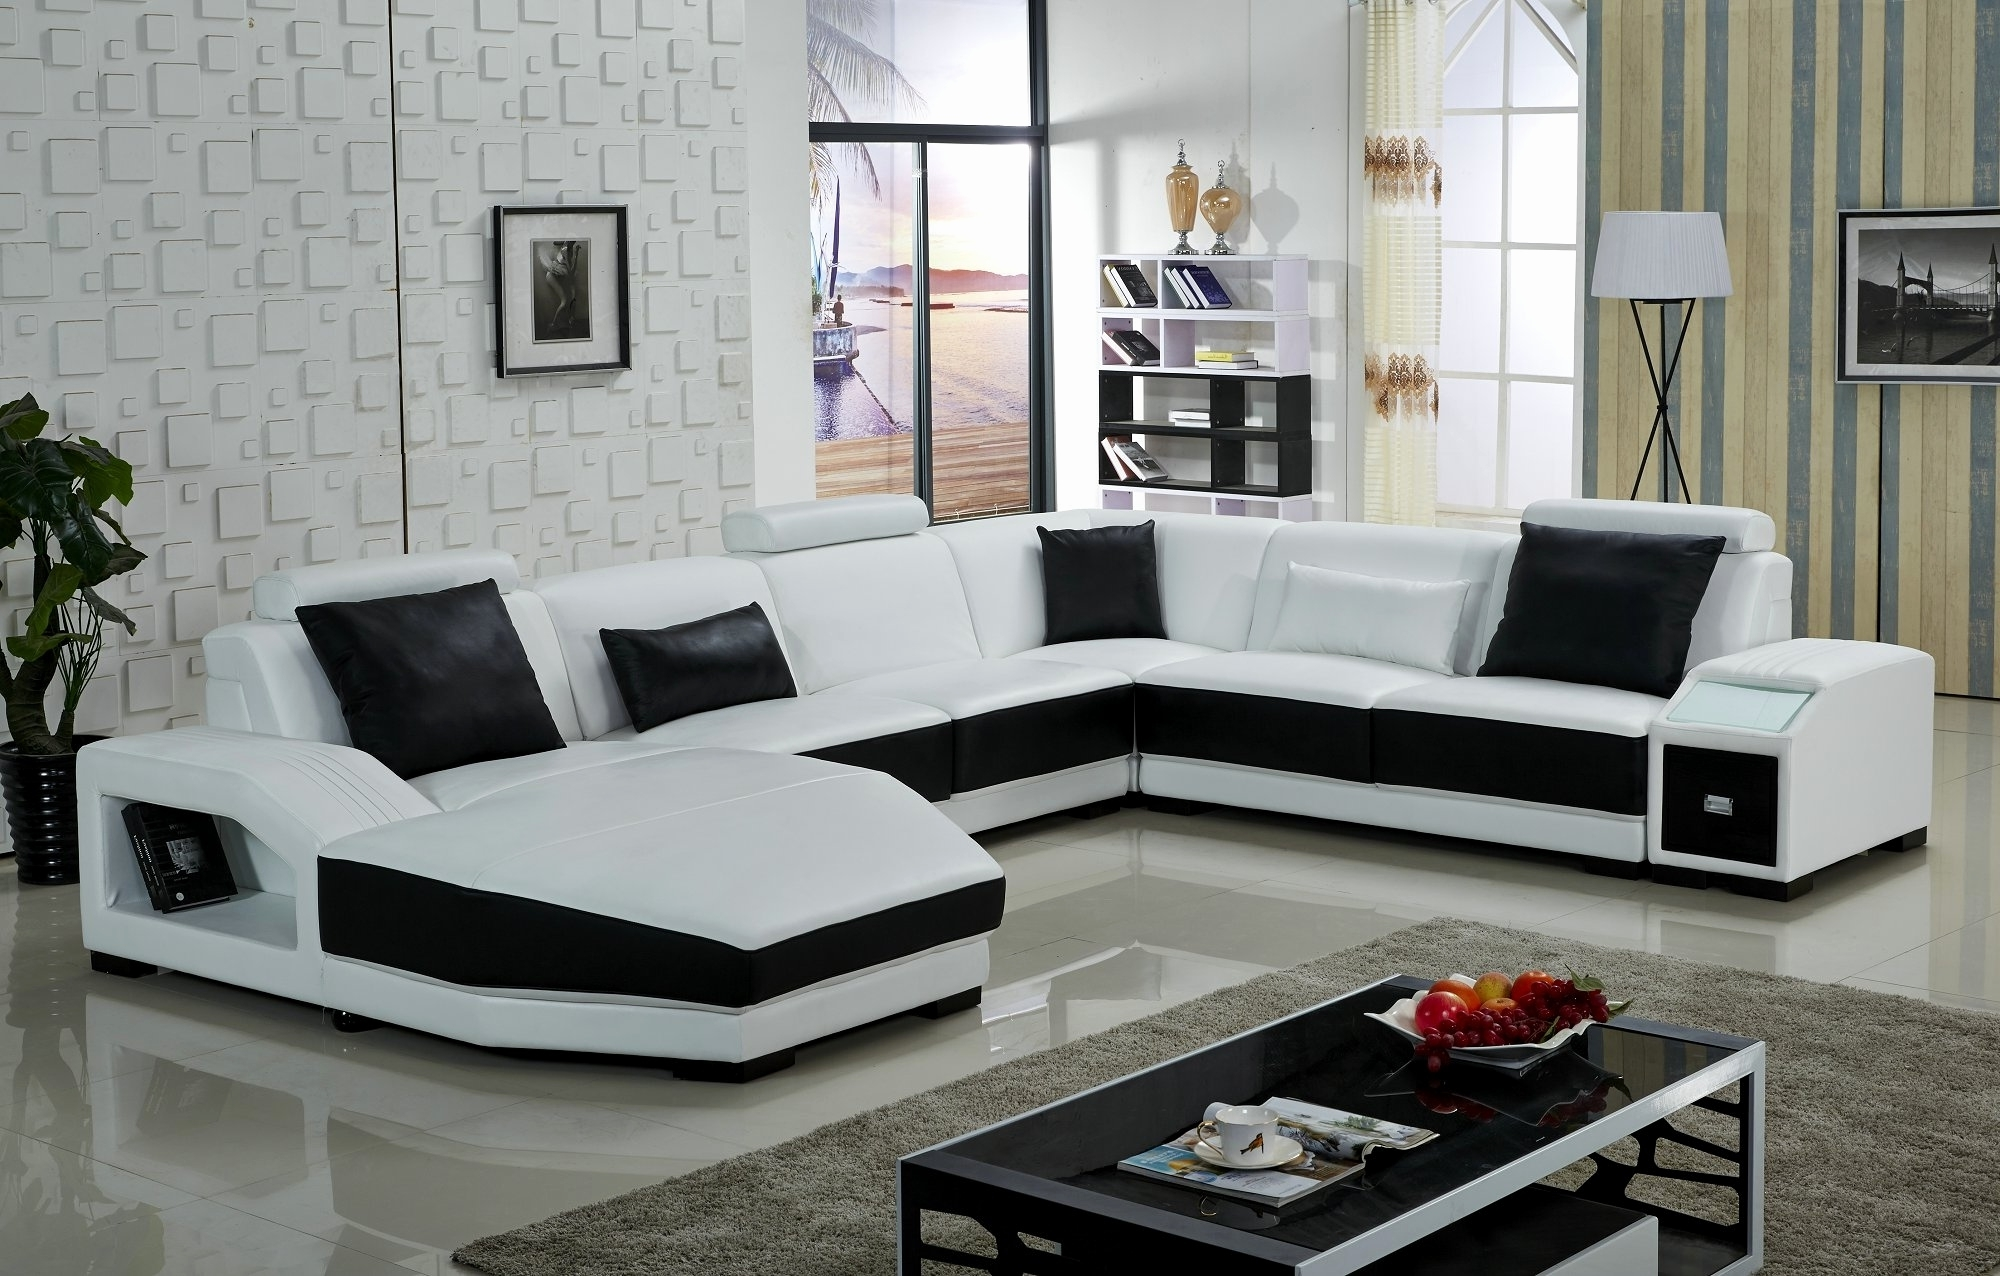 Trendy Beautiful U Shaped Modular Sectional Sofa 2018 – Couches And Sofas Pertaining To Modern U Shaped Sectional Sofas (View 13 of 15)